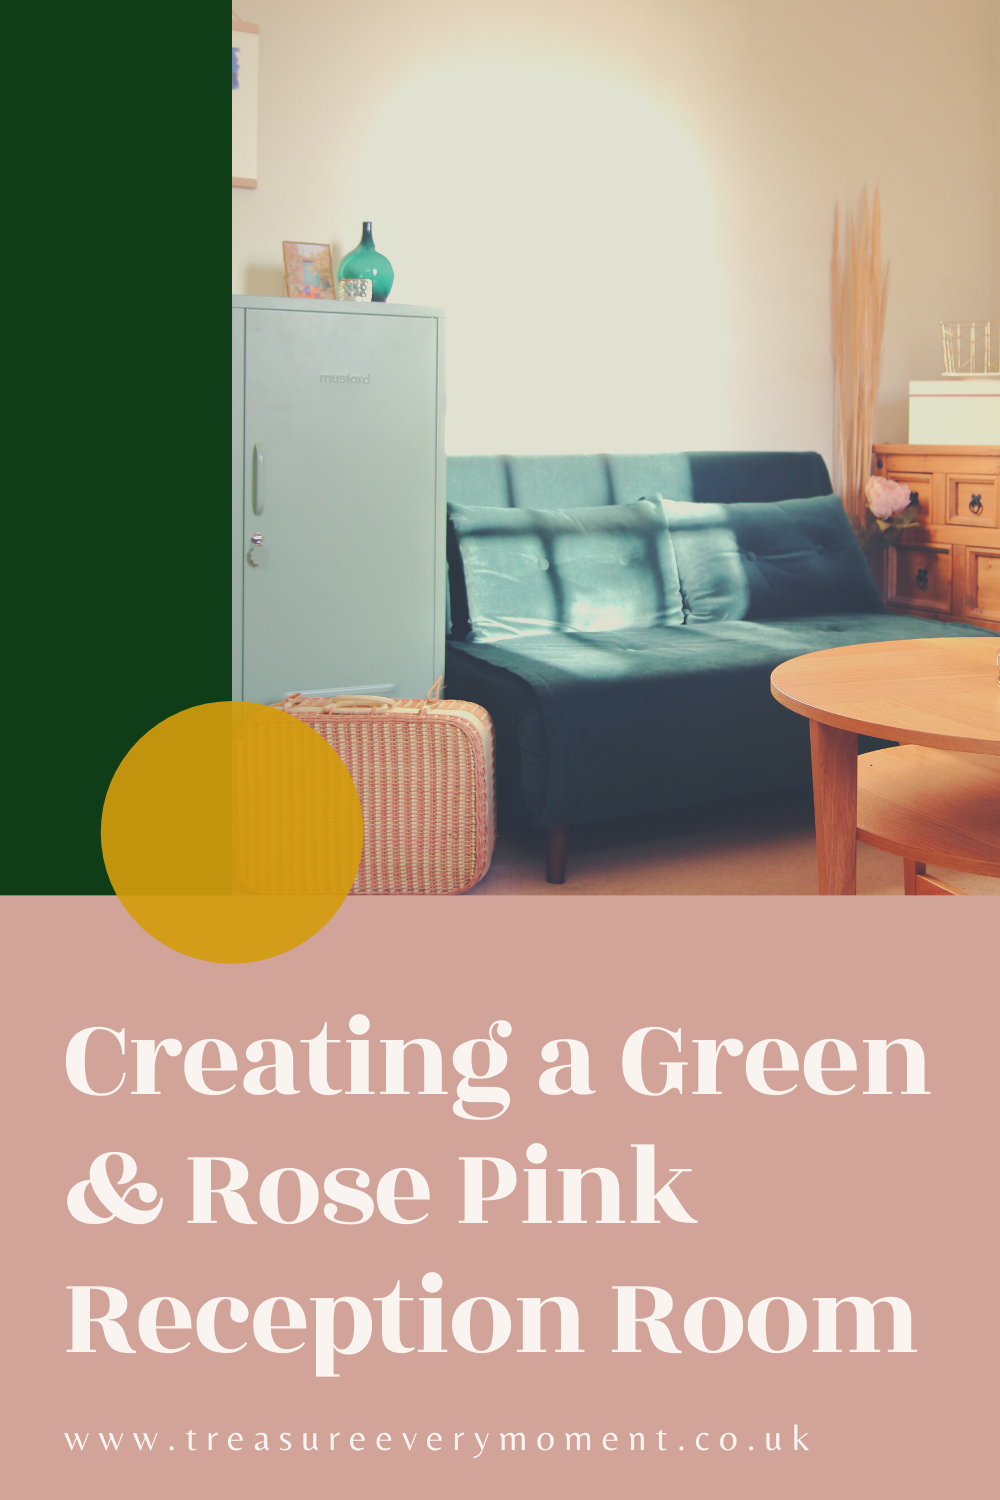 Creating a Family-Friendly Green & Rose Pink Reception Room